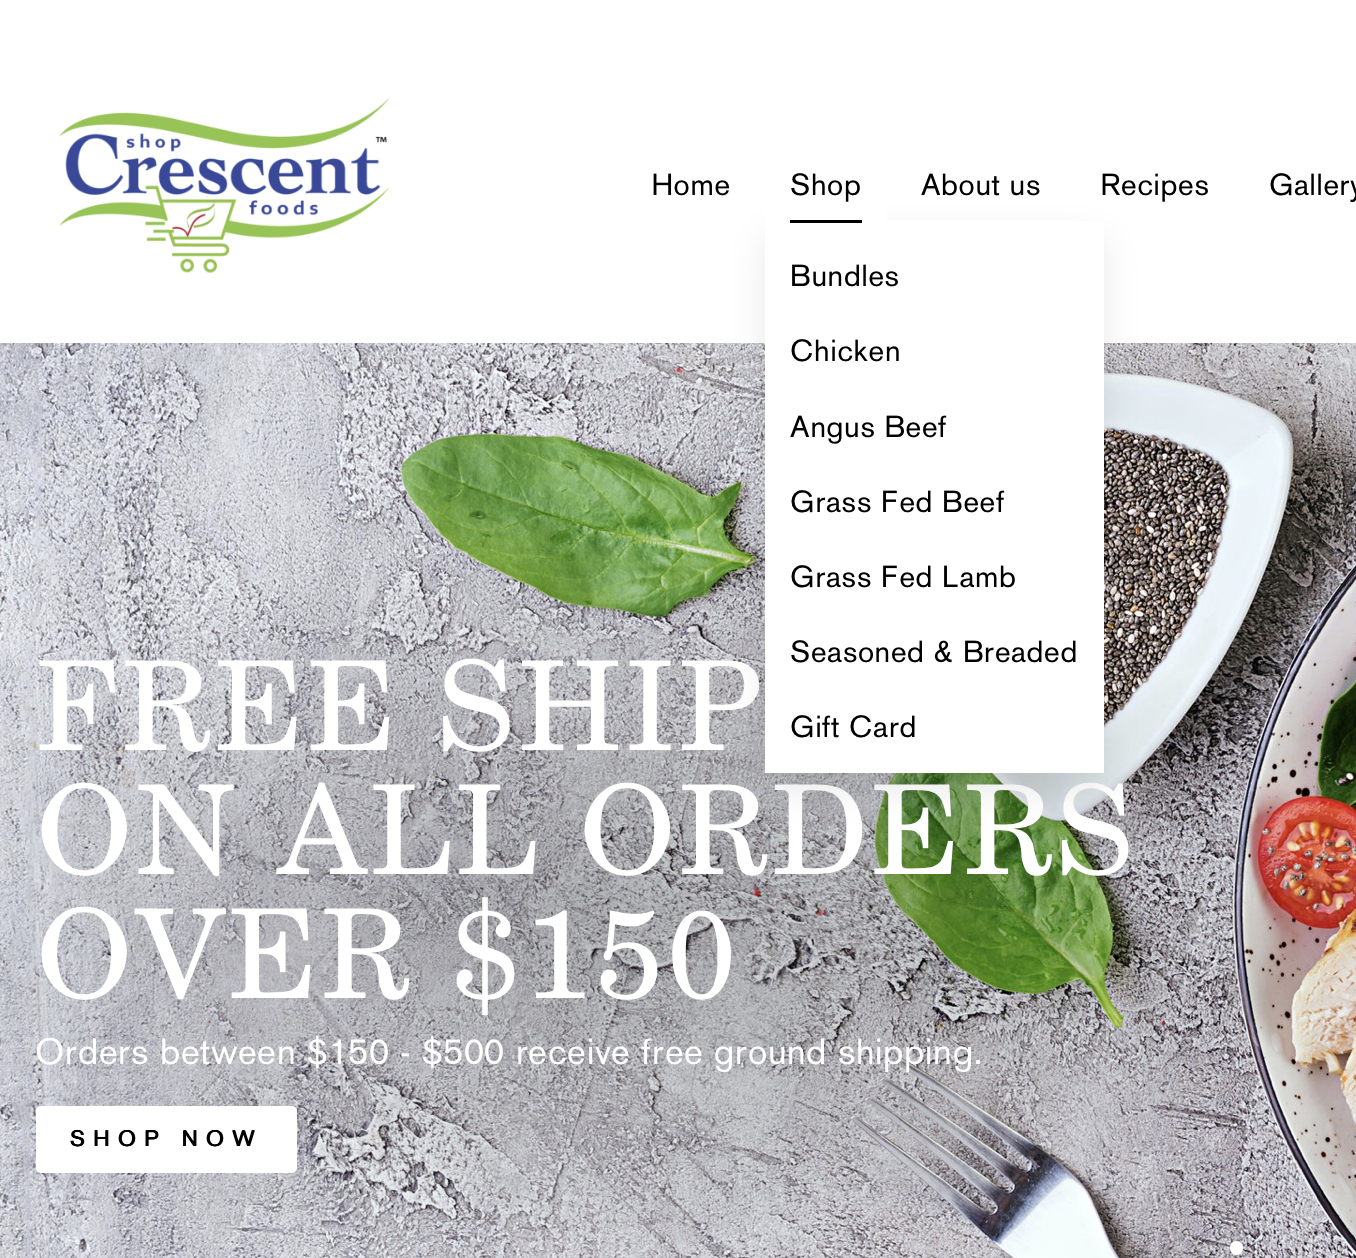 Shop Crescent Foods | Home Meat Delivery